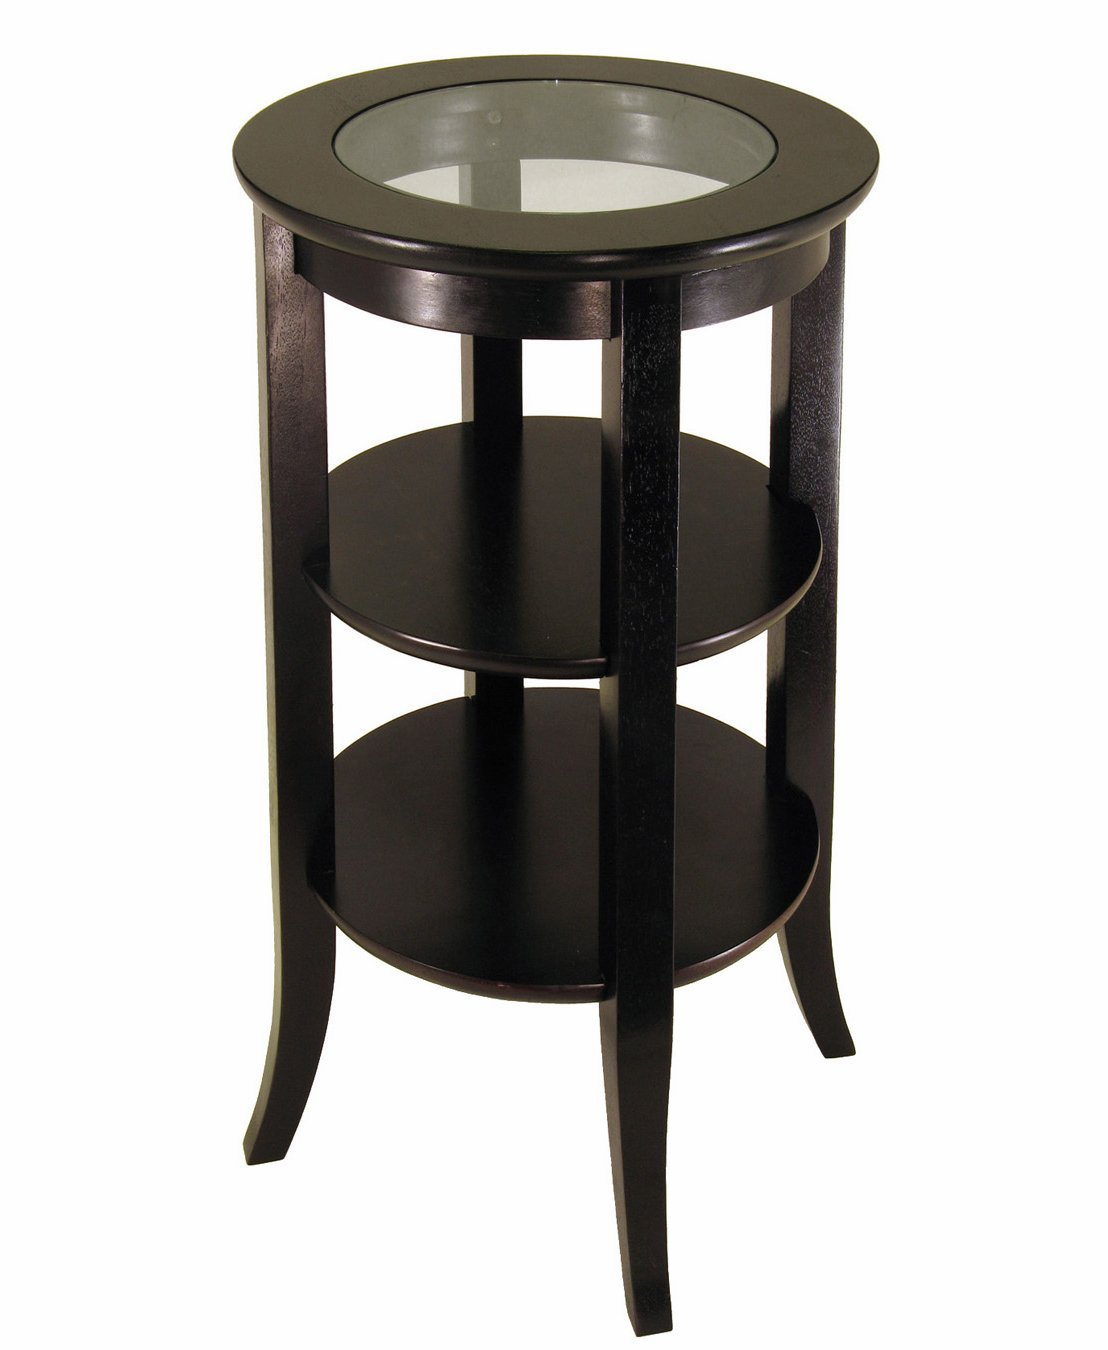 marvellous modern round pedestal side table paula deen tall antique home large roundhill rene distressed black wooden small accent diy white wood furniture grey glamorous full